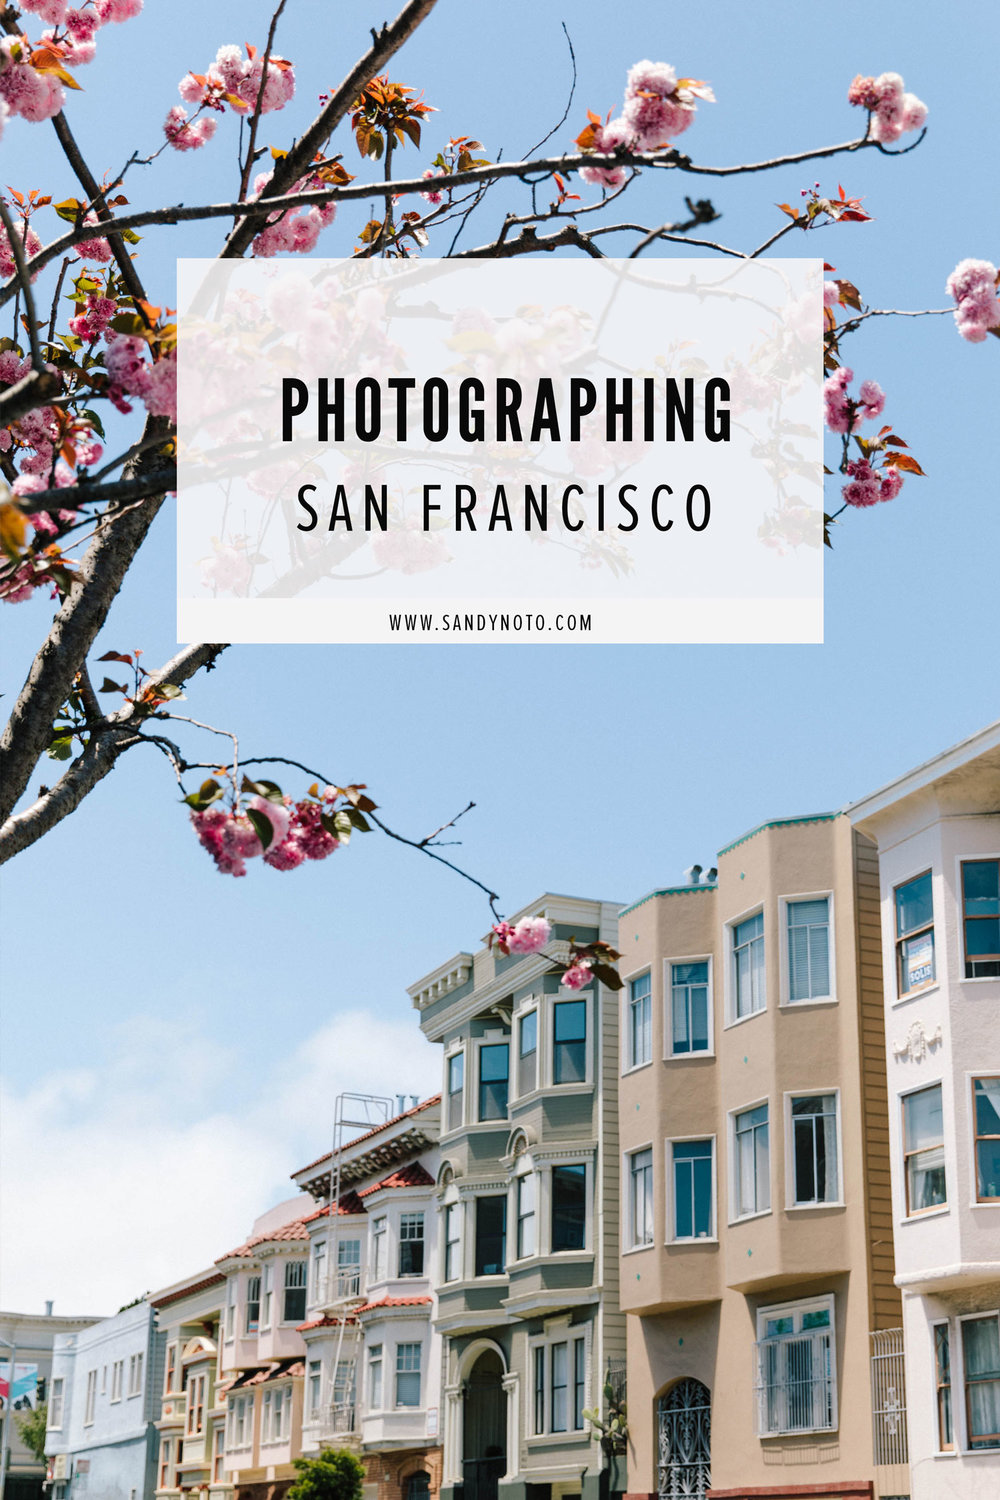 Photographing San Francisco